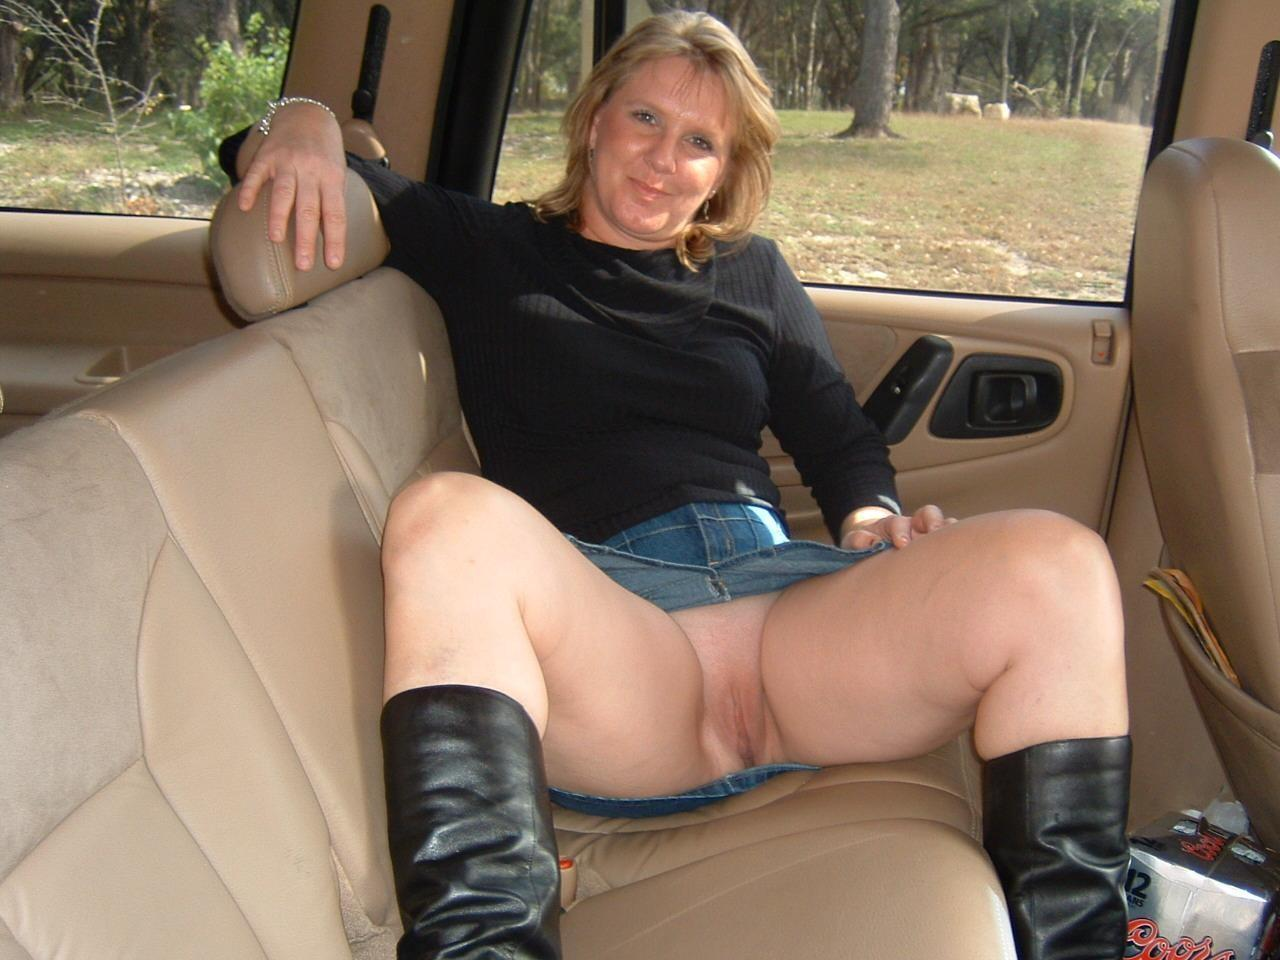 Dogging to go 2014 - 2 part 5